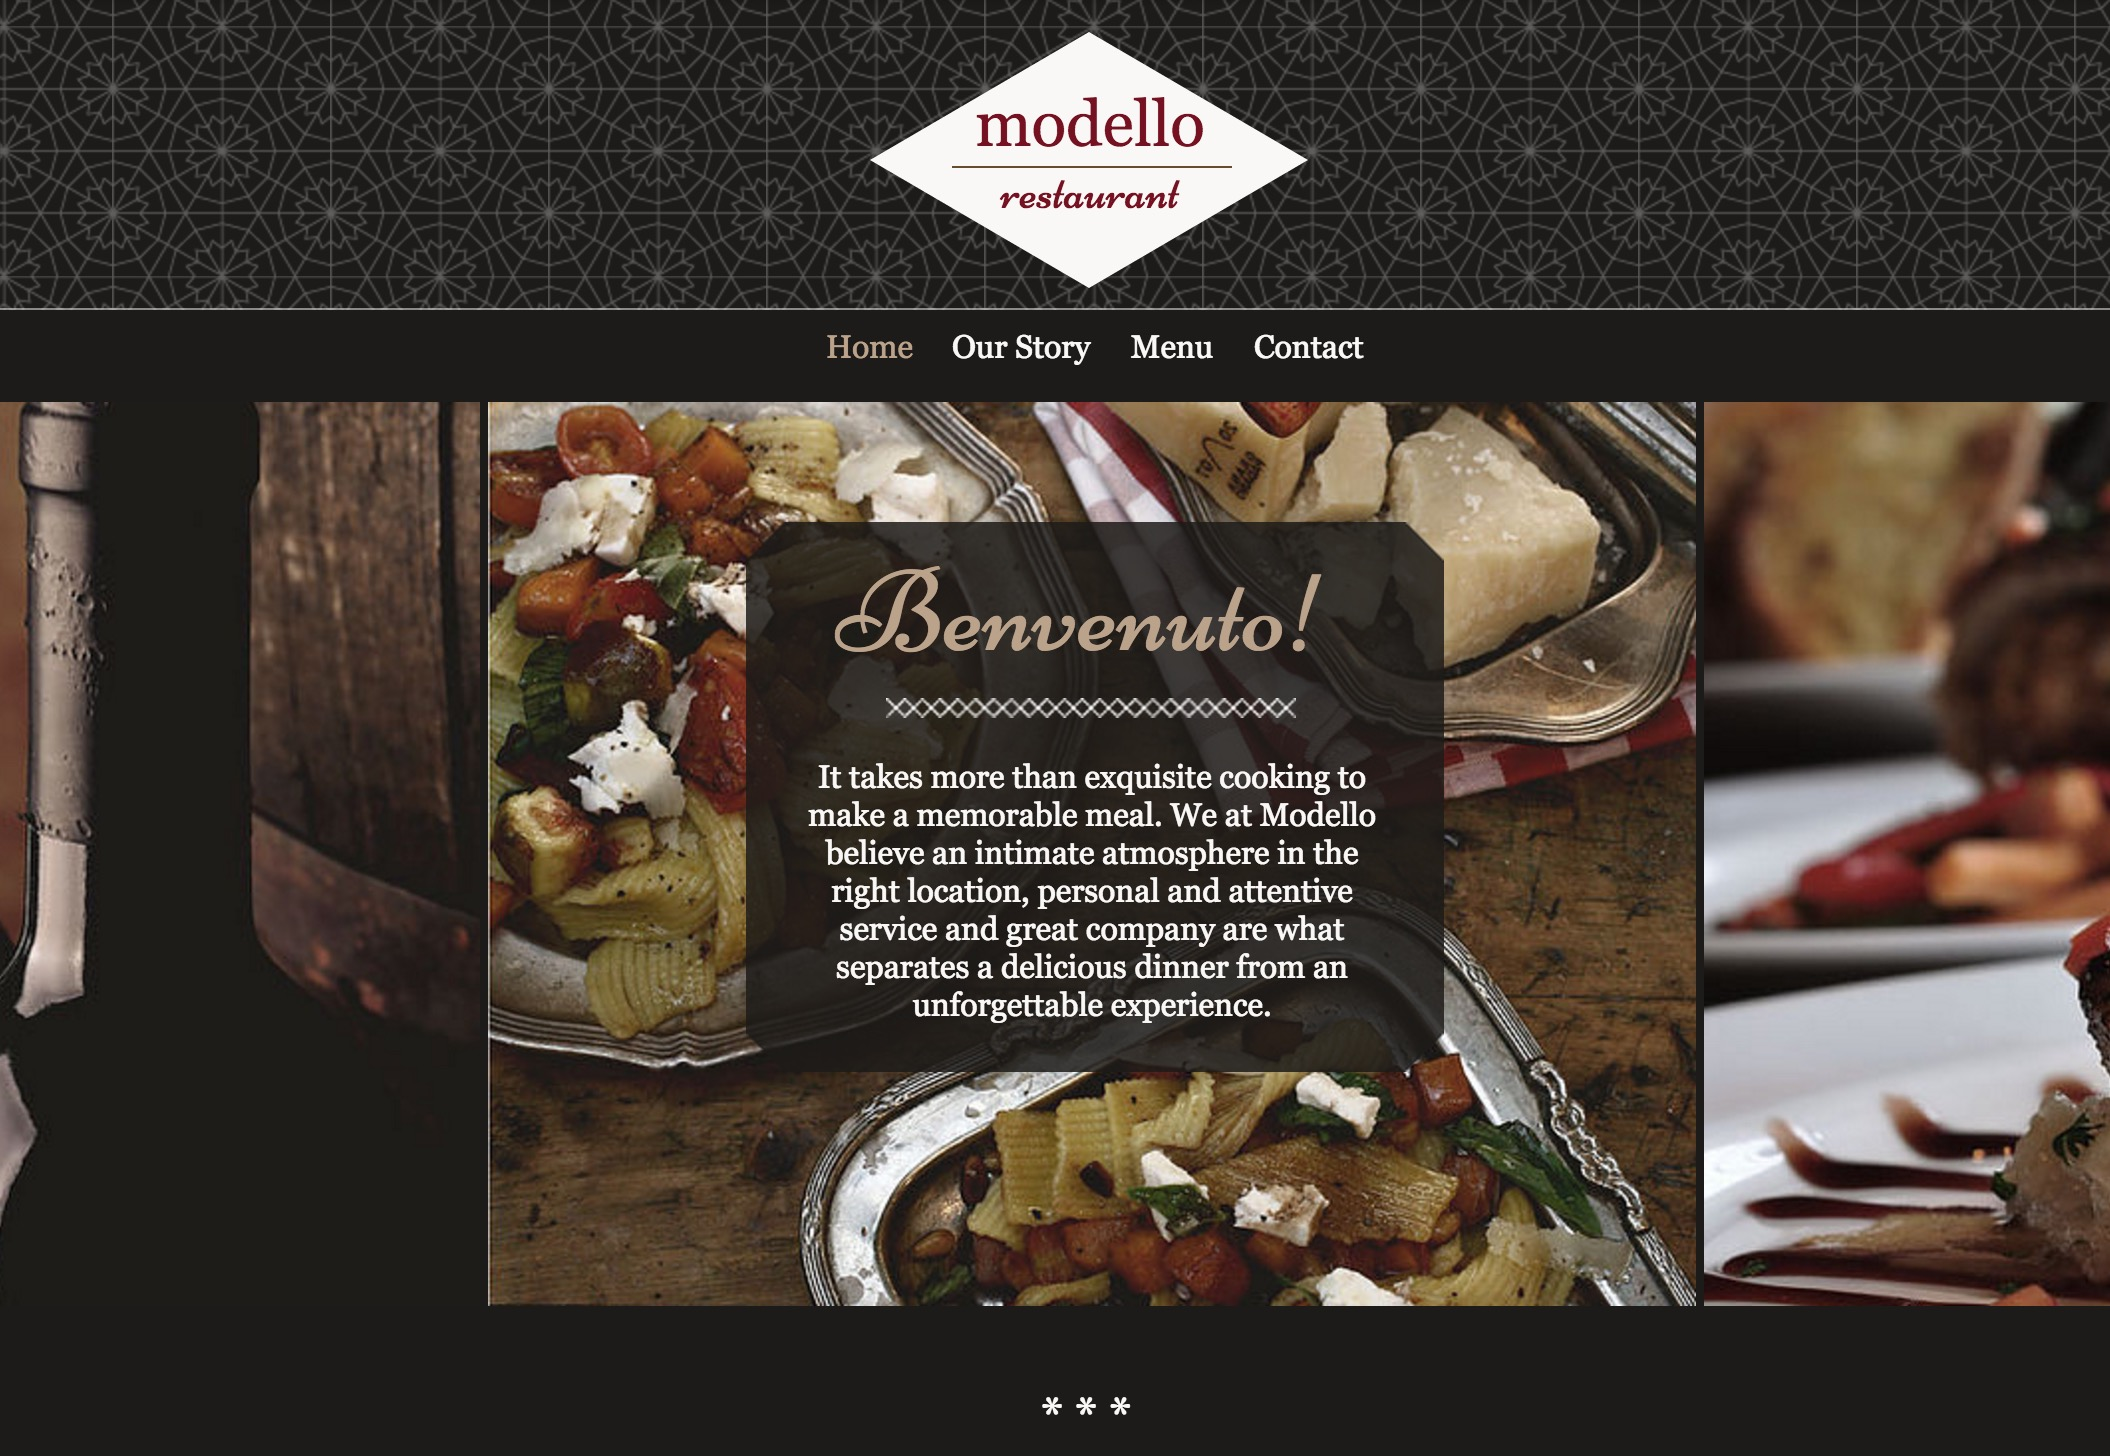 The Italian Restaurant Template